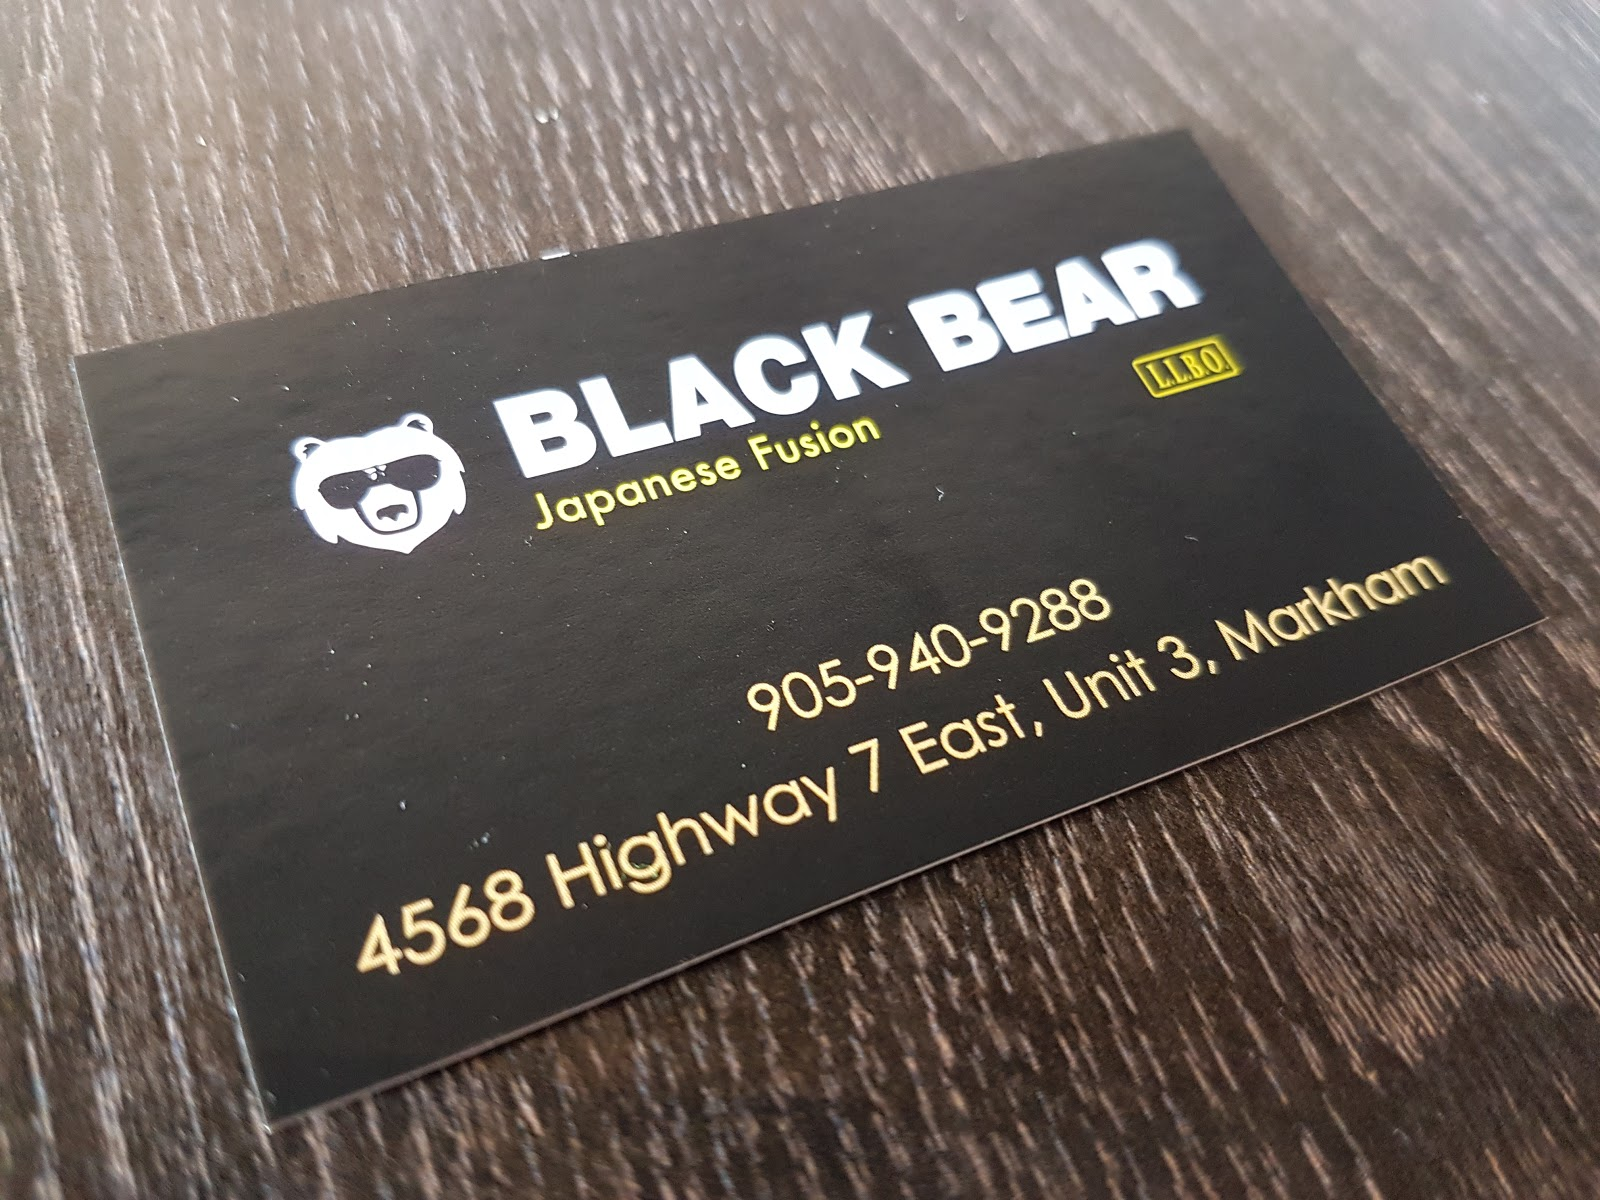 Lunch at Black Bear Japanese Fusion (Markham, Ontario) - Eating With ...